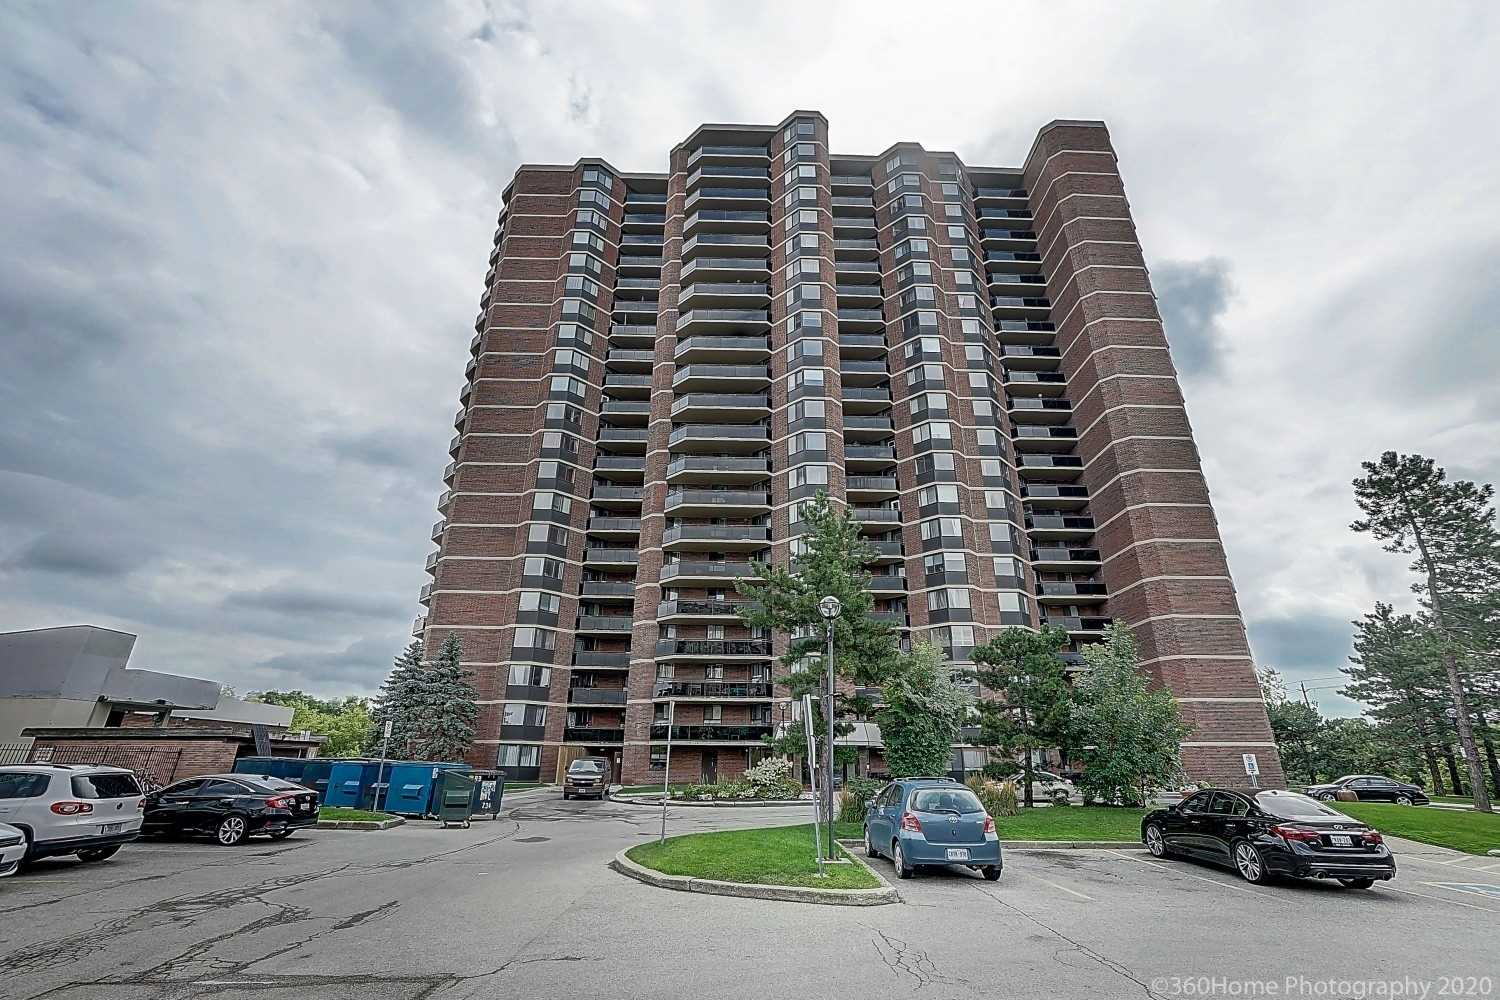 234 Albion Rd, Toronto, Ontario M9W6A5, 3 Bedrooms Bedrooms, 7 Rooms Rooms,2 BathroomsBathrooms,Condo Apt,For Sale,Albion,W4892451